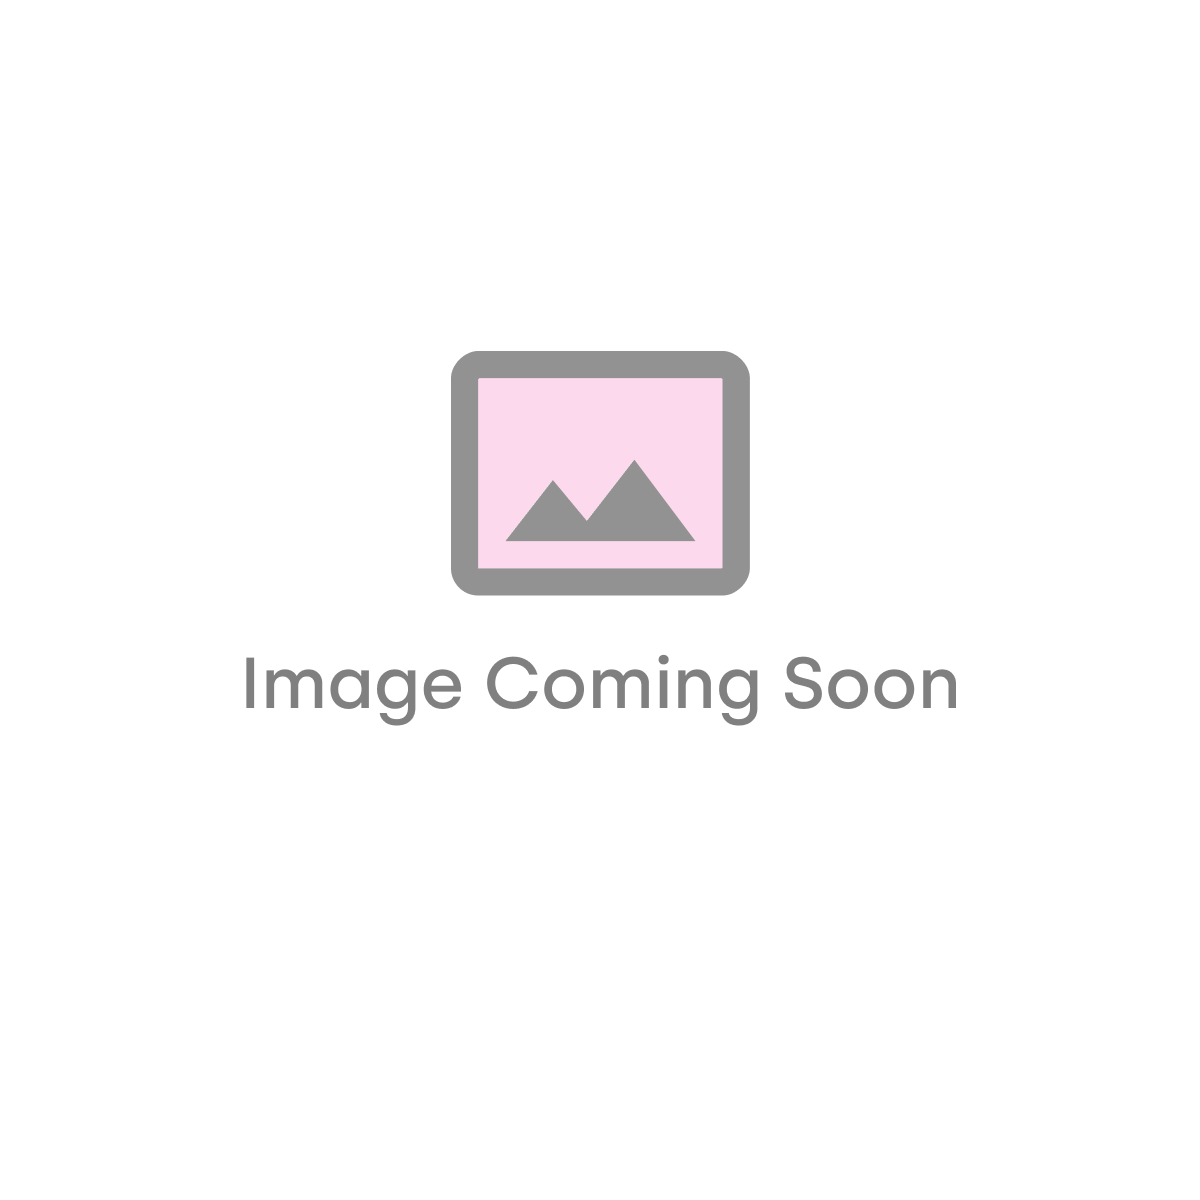 Lusso Panel Essentials White Silver Embedded 2.7m Ceiling Panel - 5 Pack (19555)